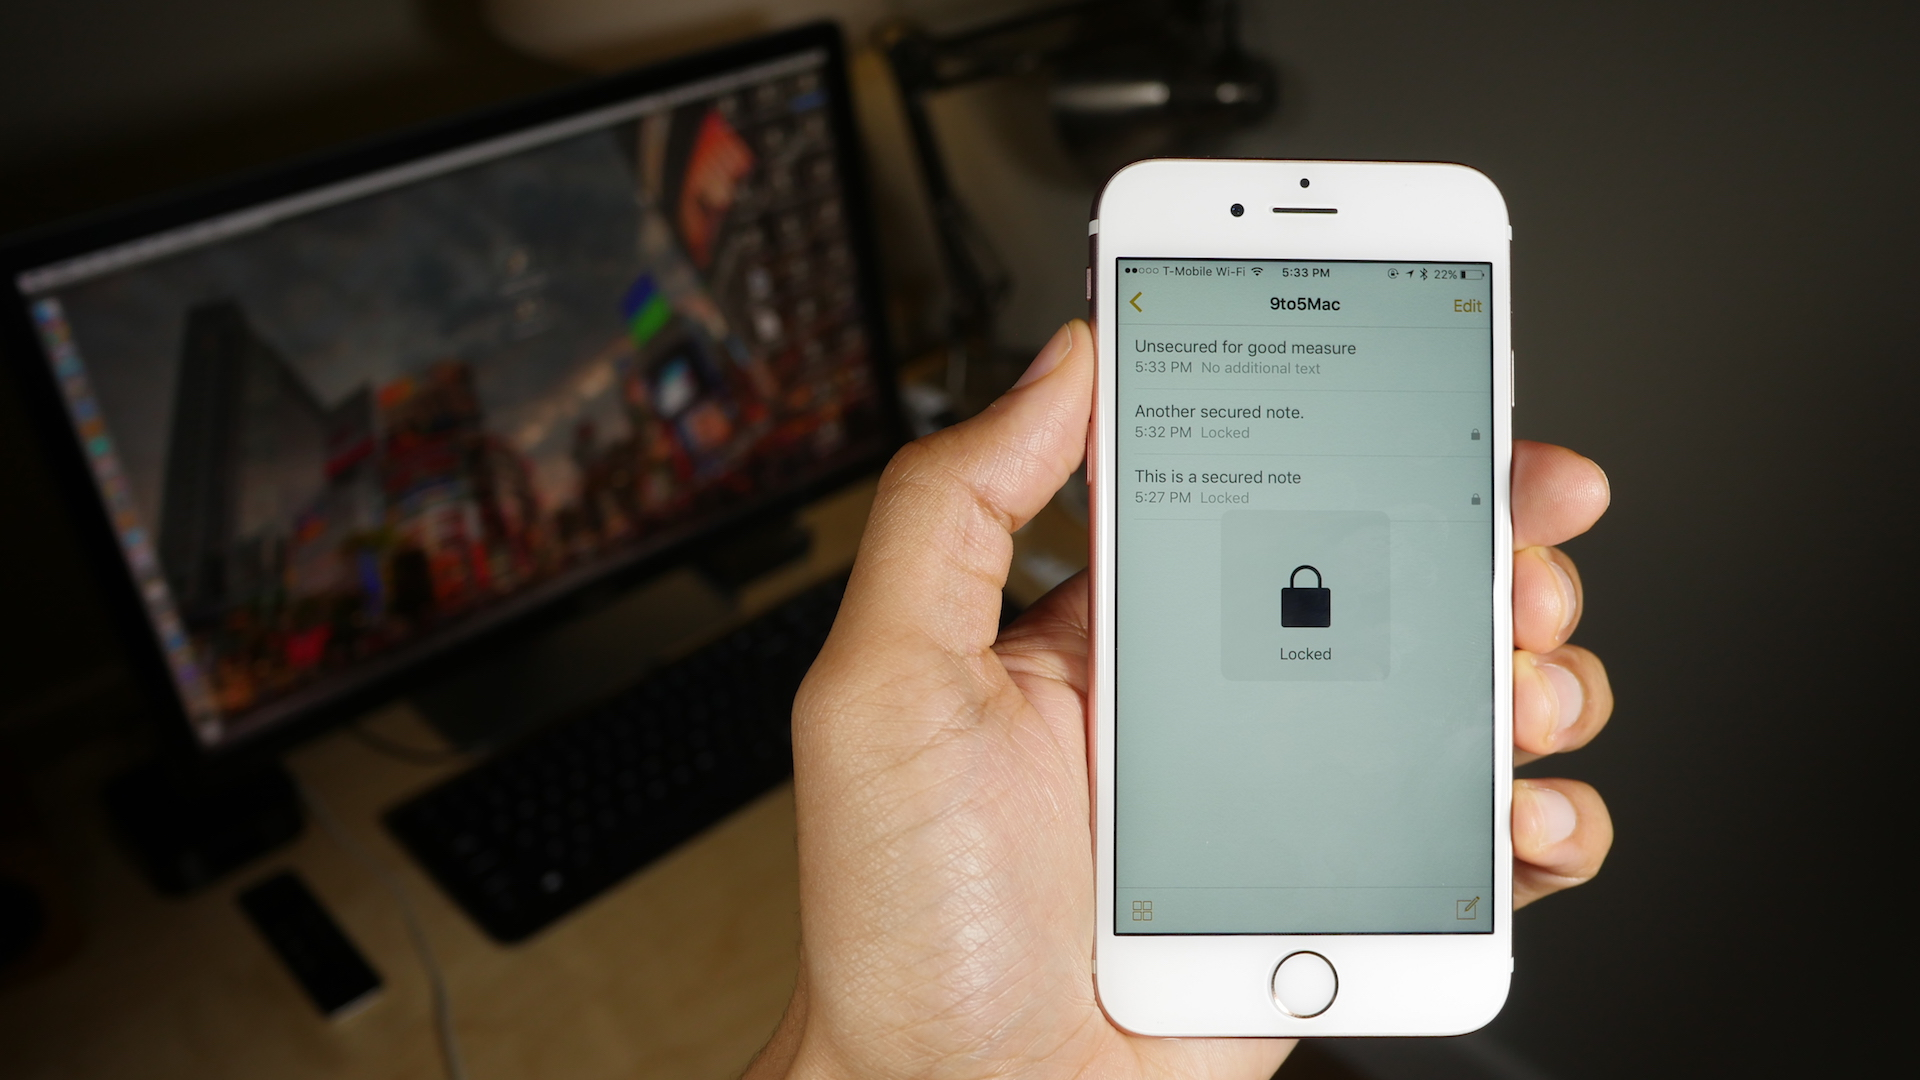 How to secure notes in iOS 9.3